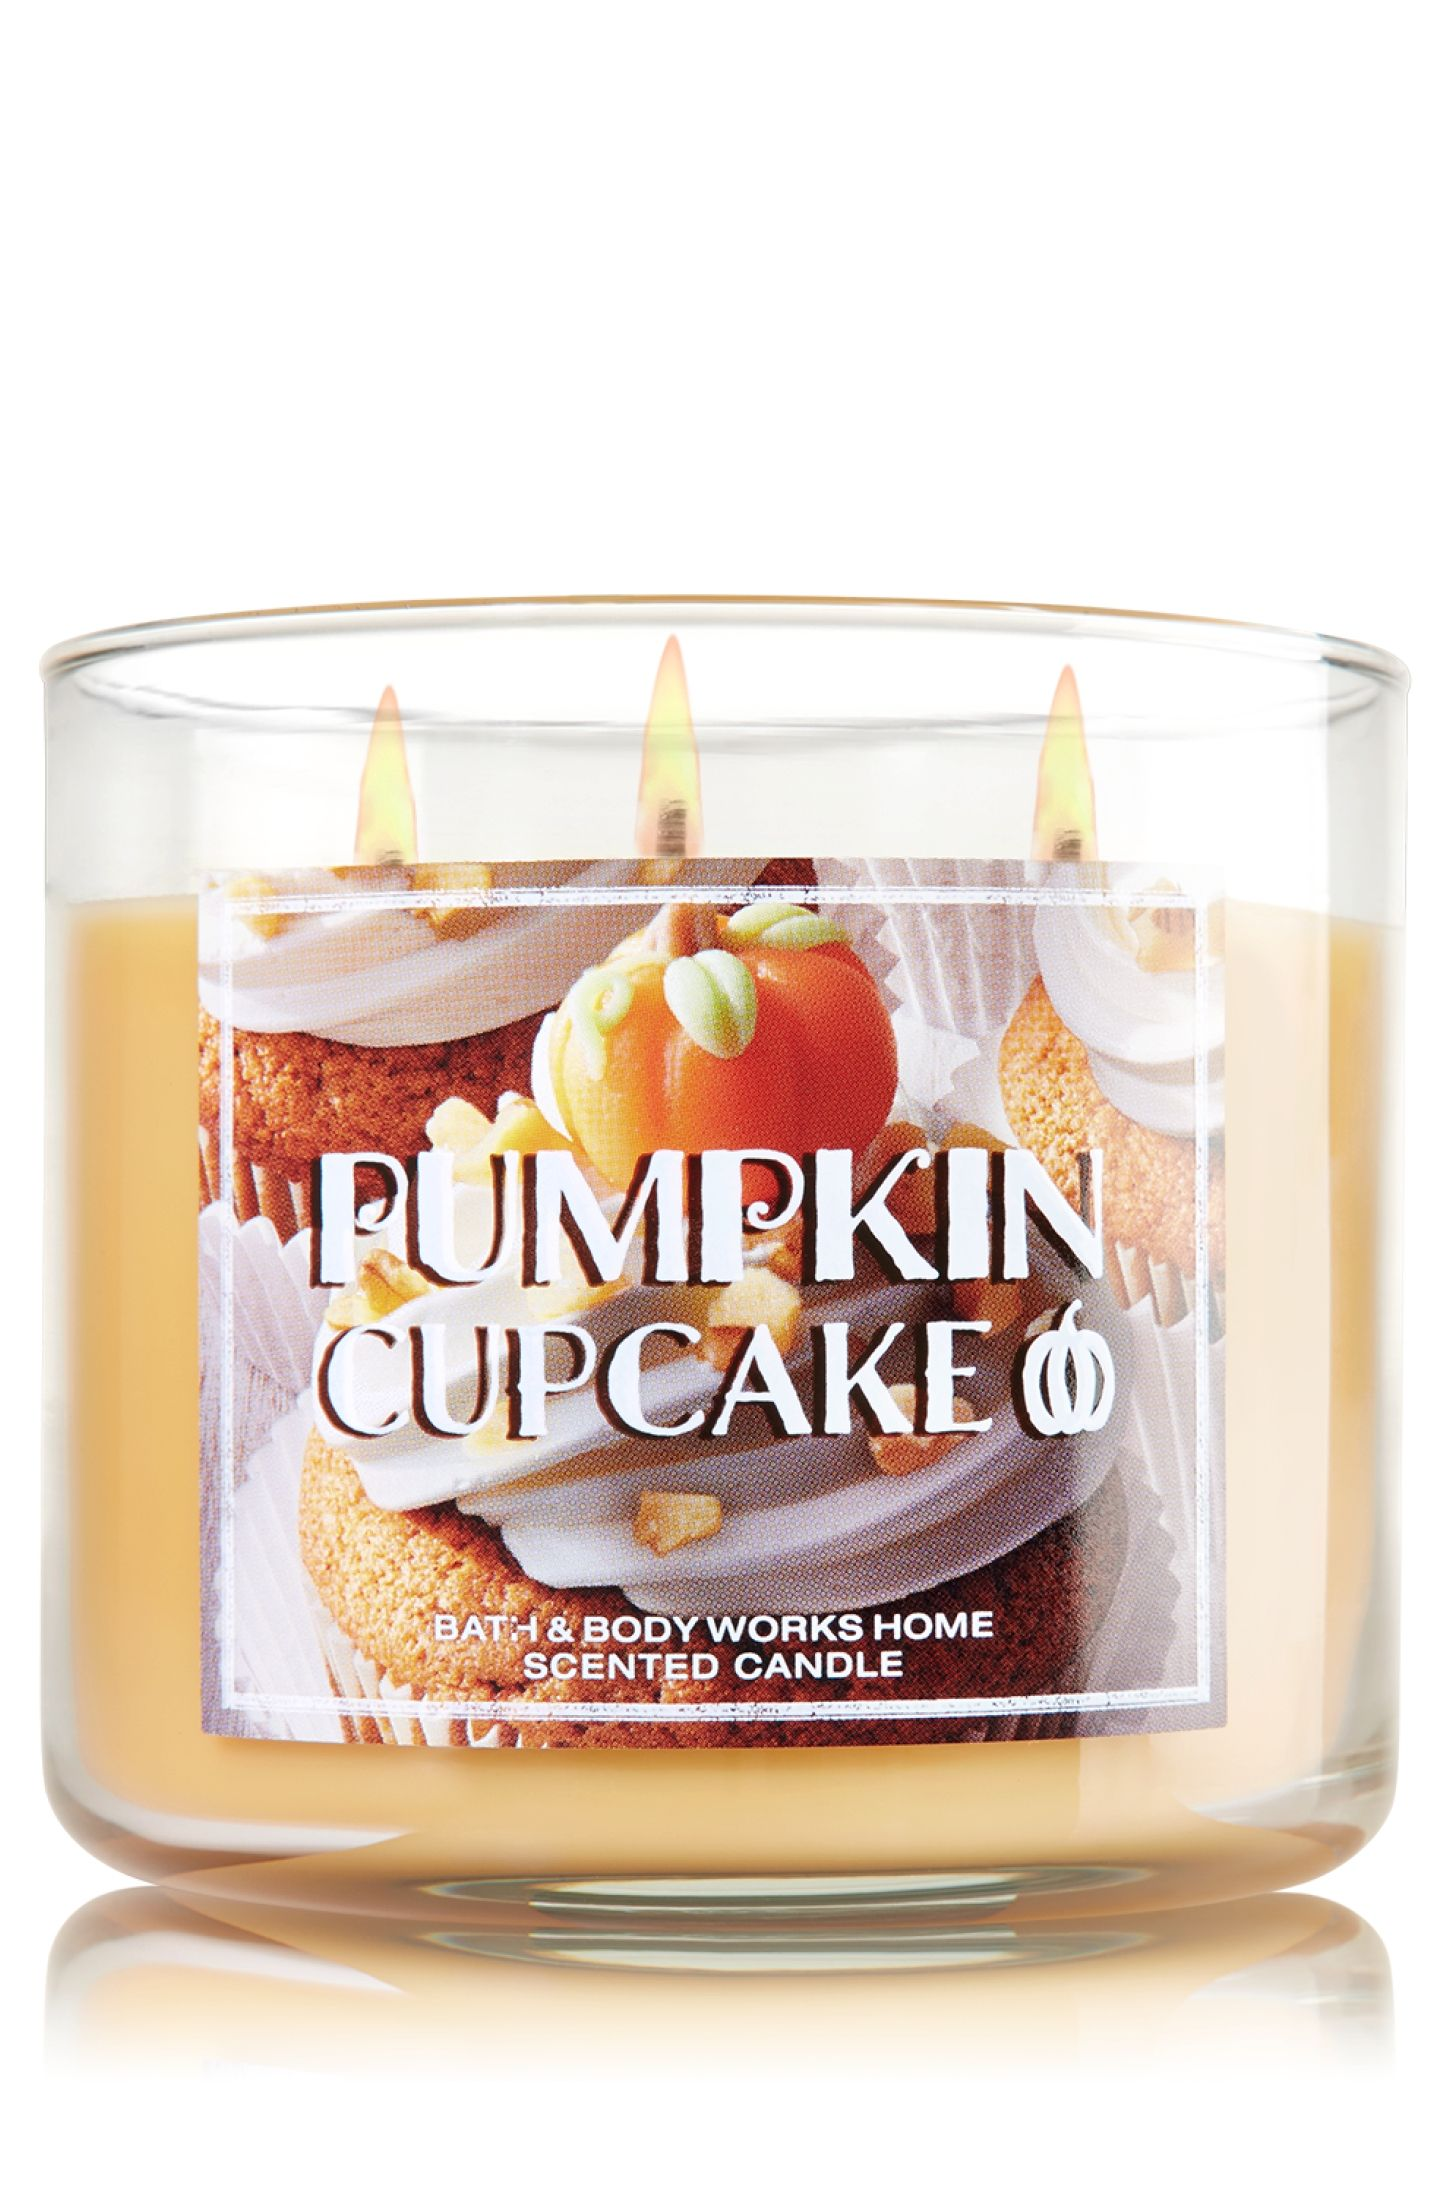 Pumpkin Cupcake 3-Wick Candle - Home Fragrance 1037181 - Bath & Body Works